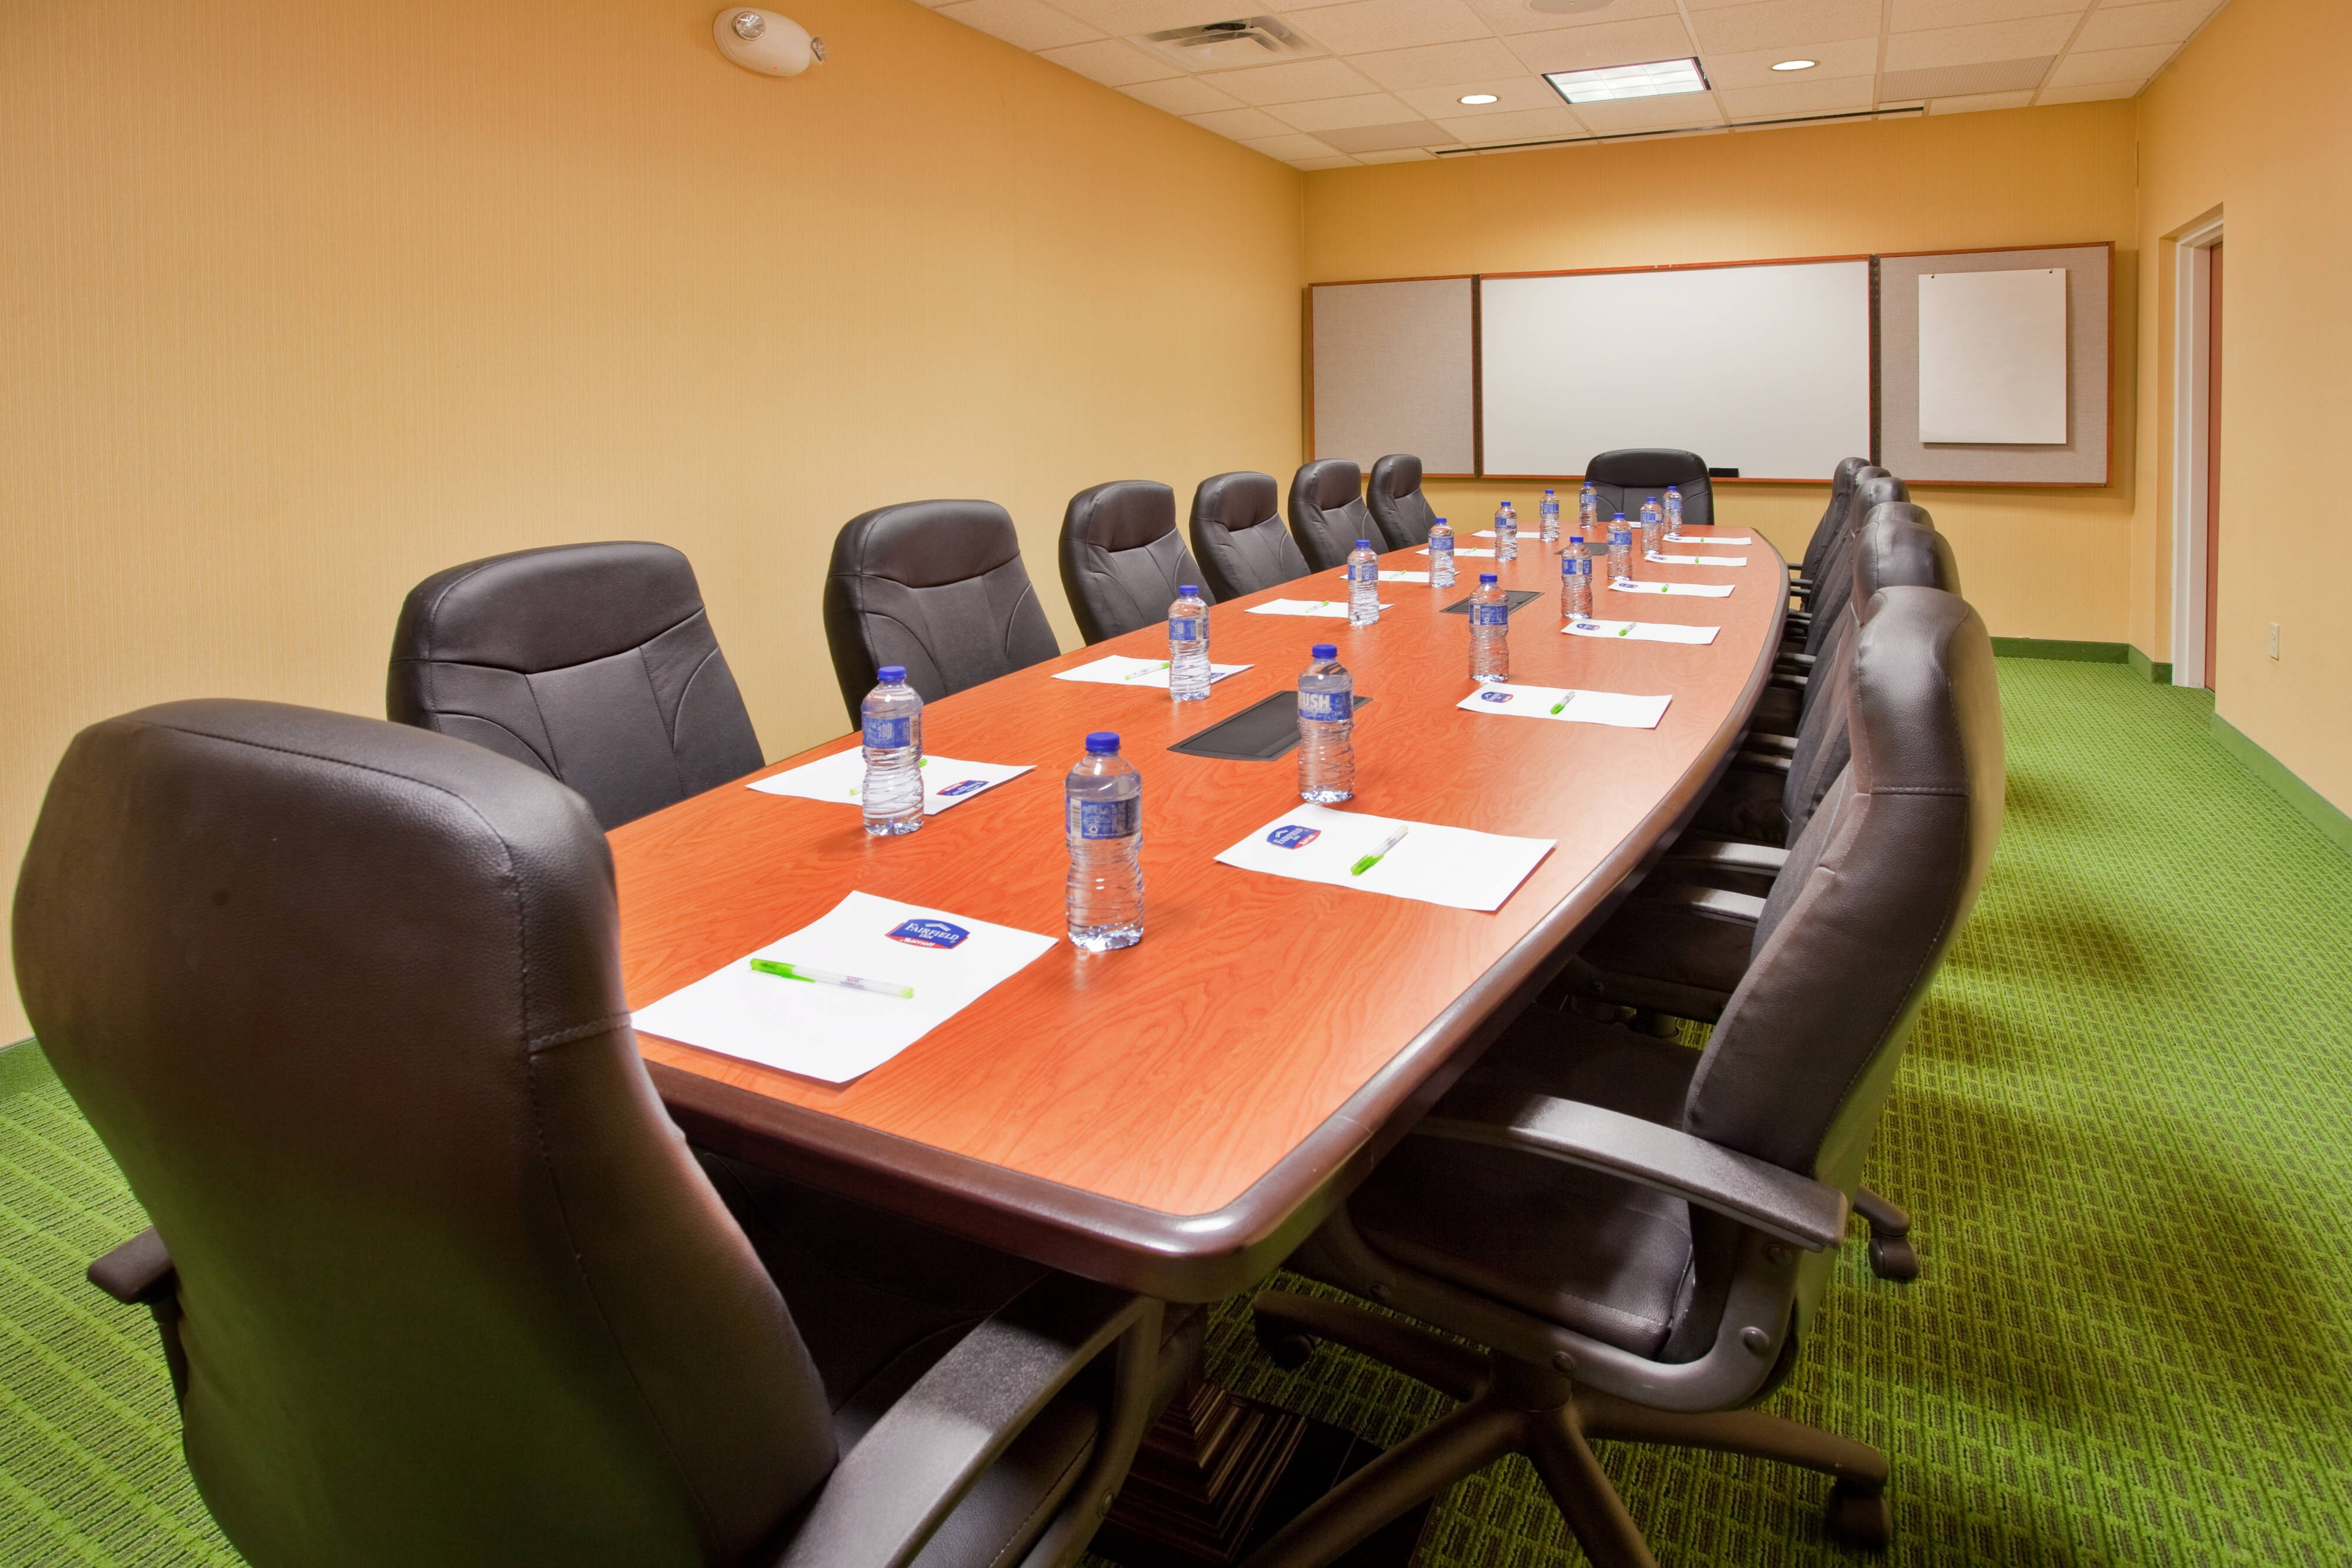 Fairfield Inn & Suites Kearney Boardroom